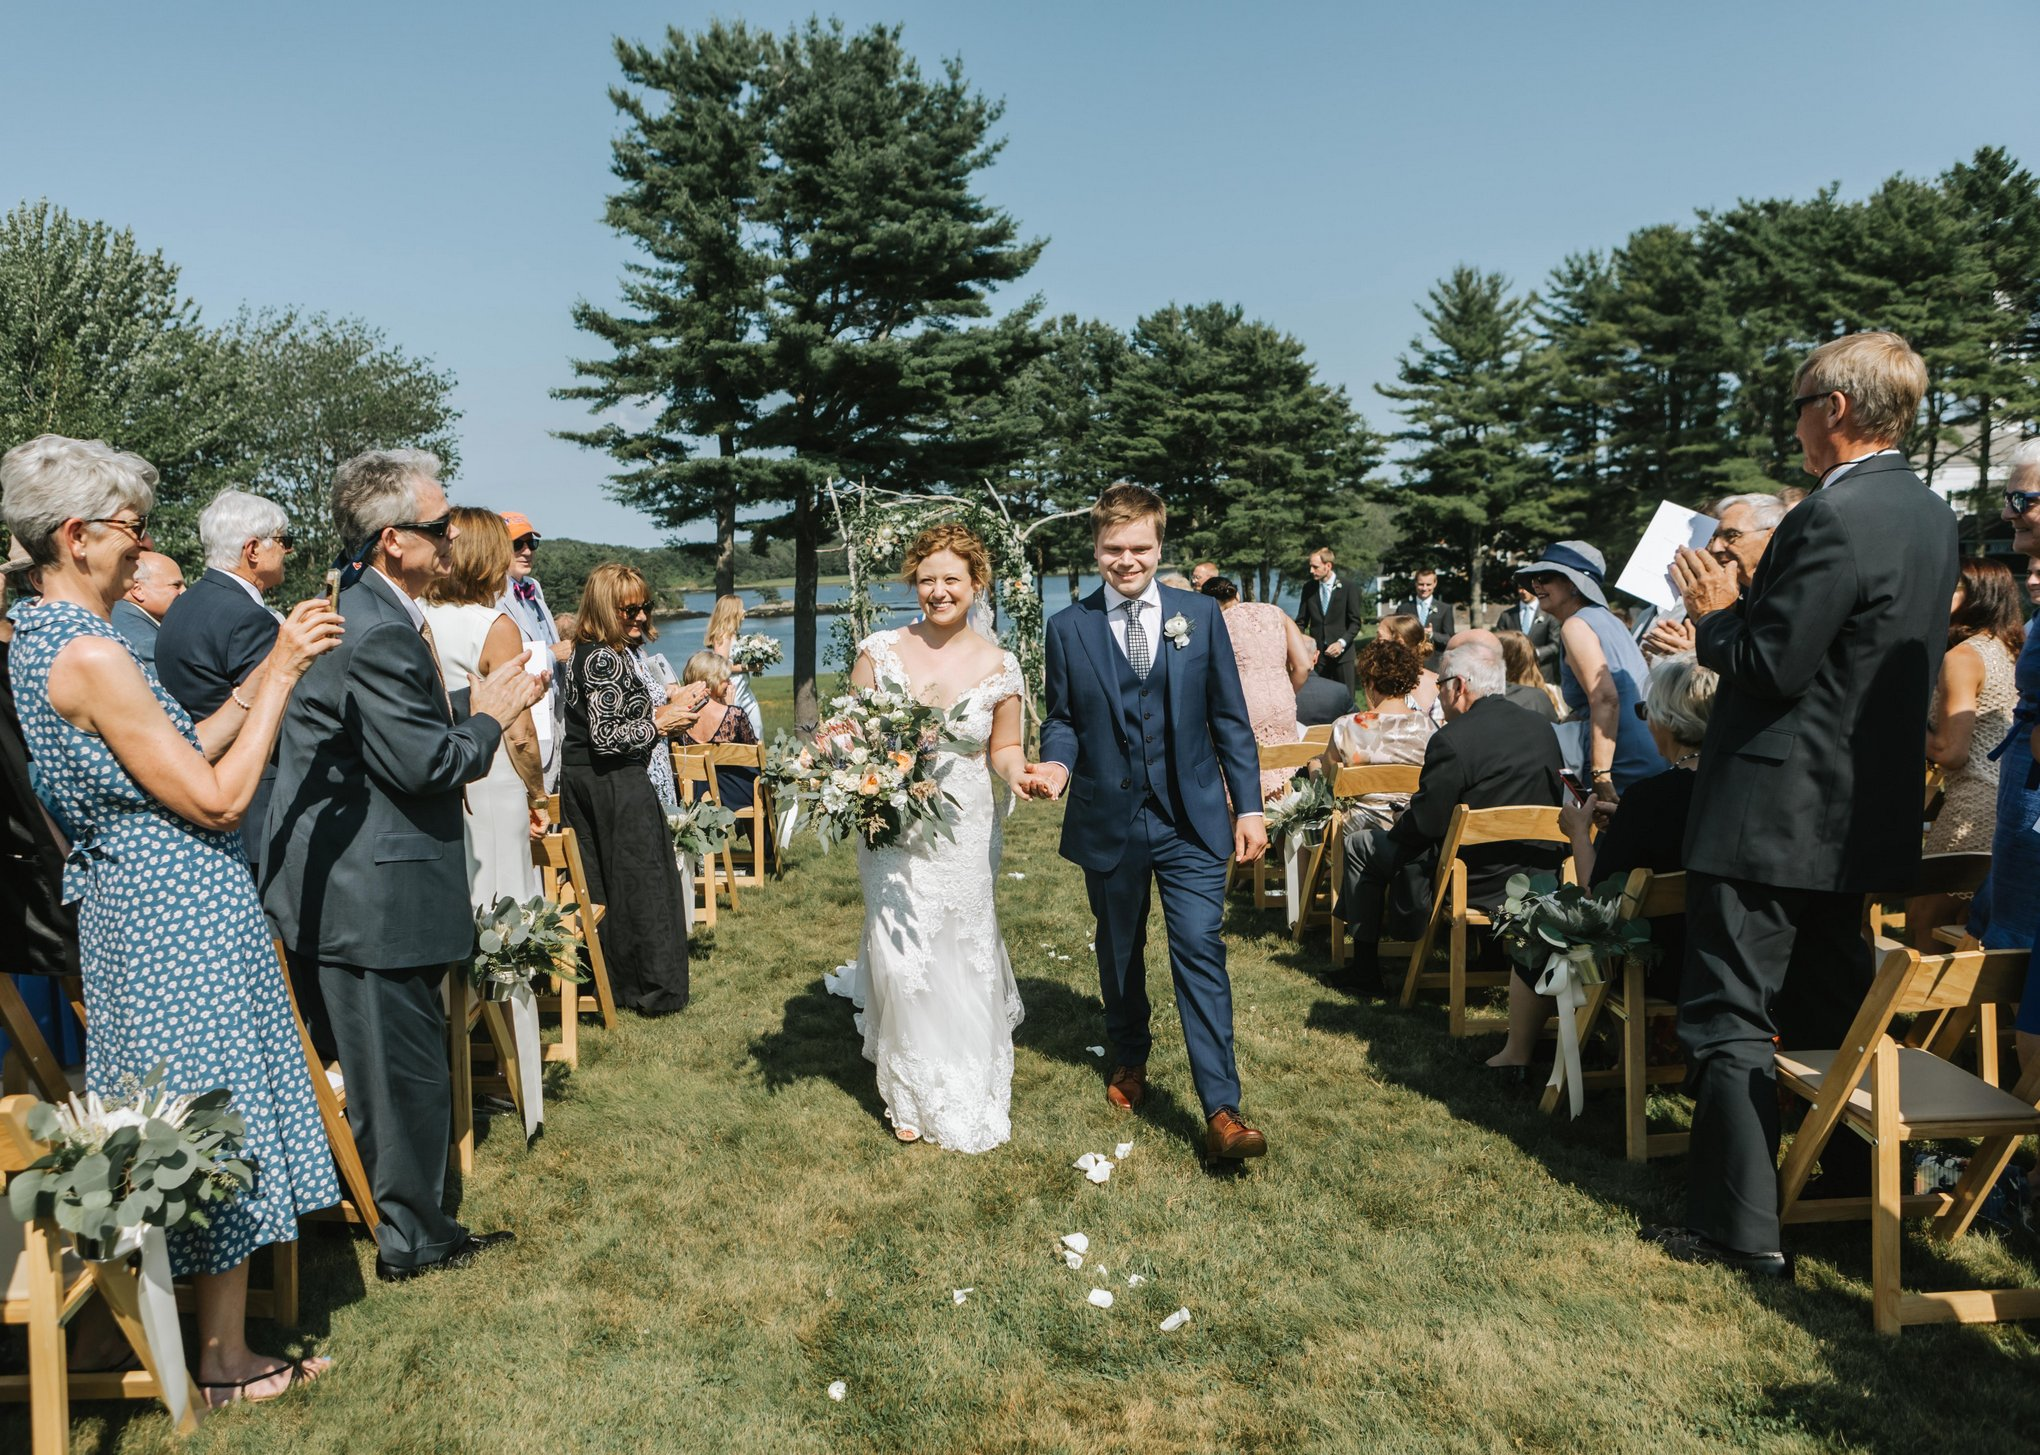 1774-Inn-Phippsburg-Maine-Wedding-36.jpg